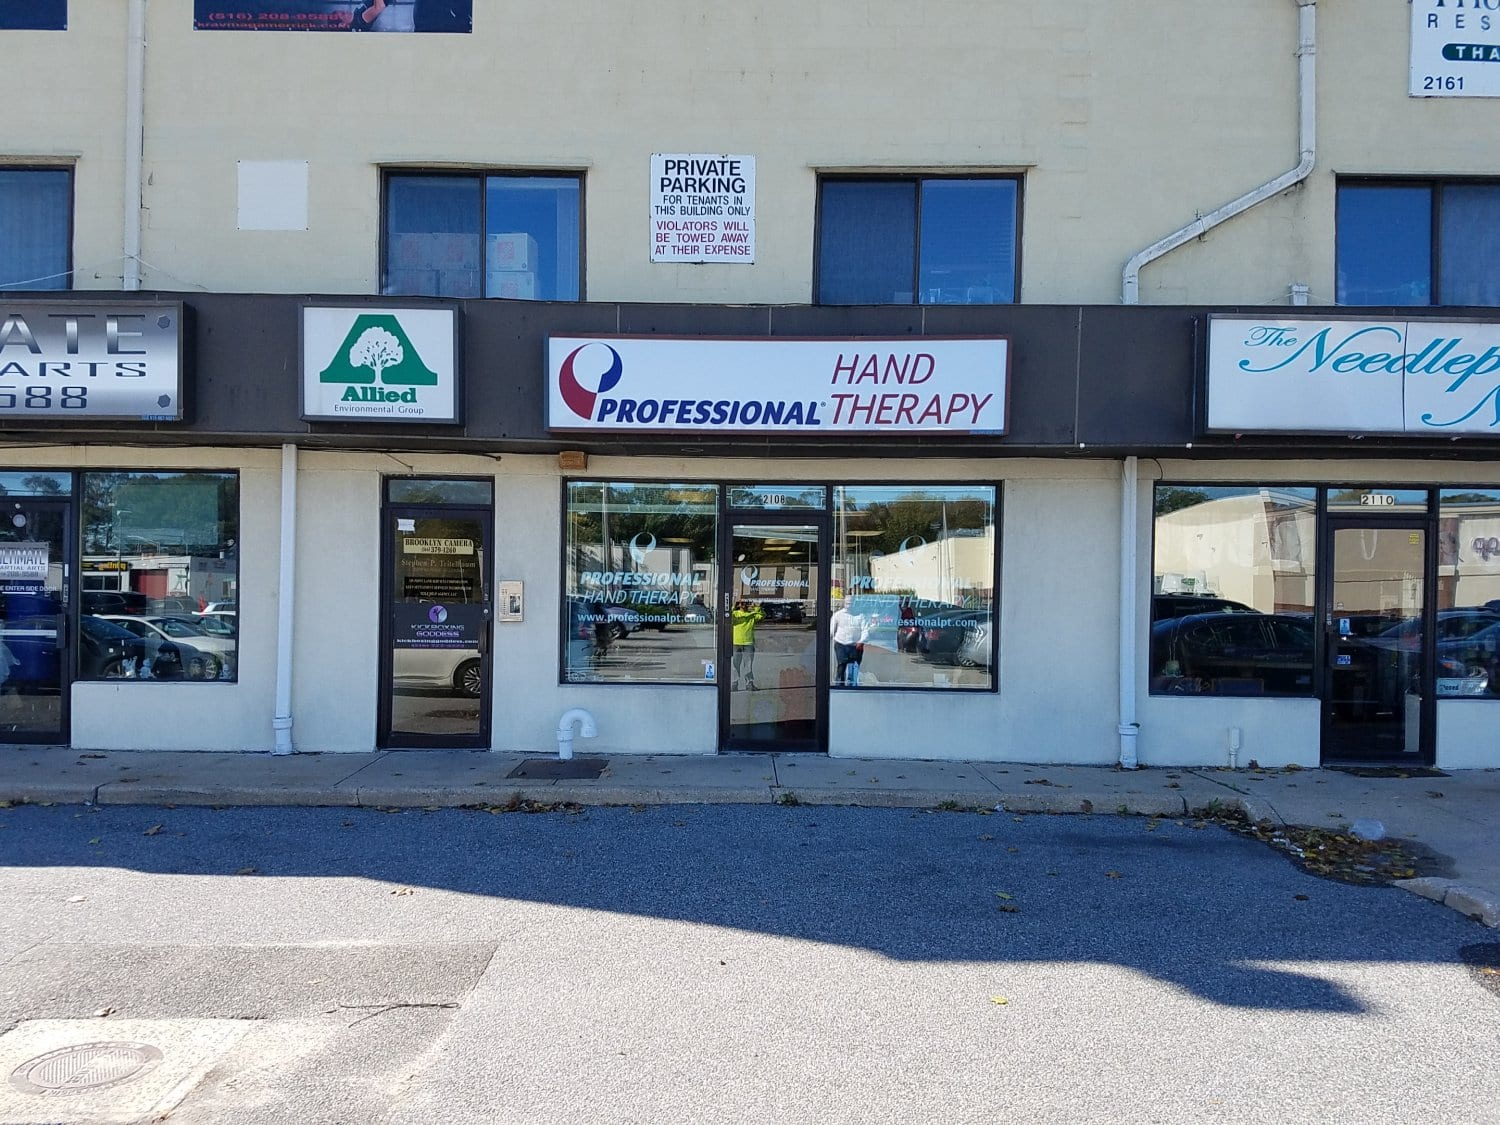 An image of the entrance to our hand physical therapy clinic in Merrick, New York.